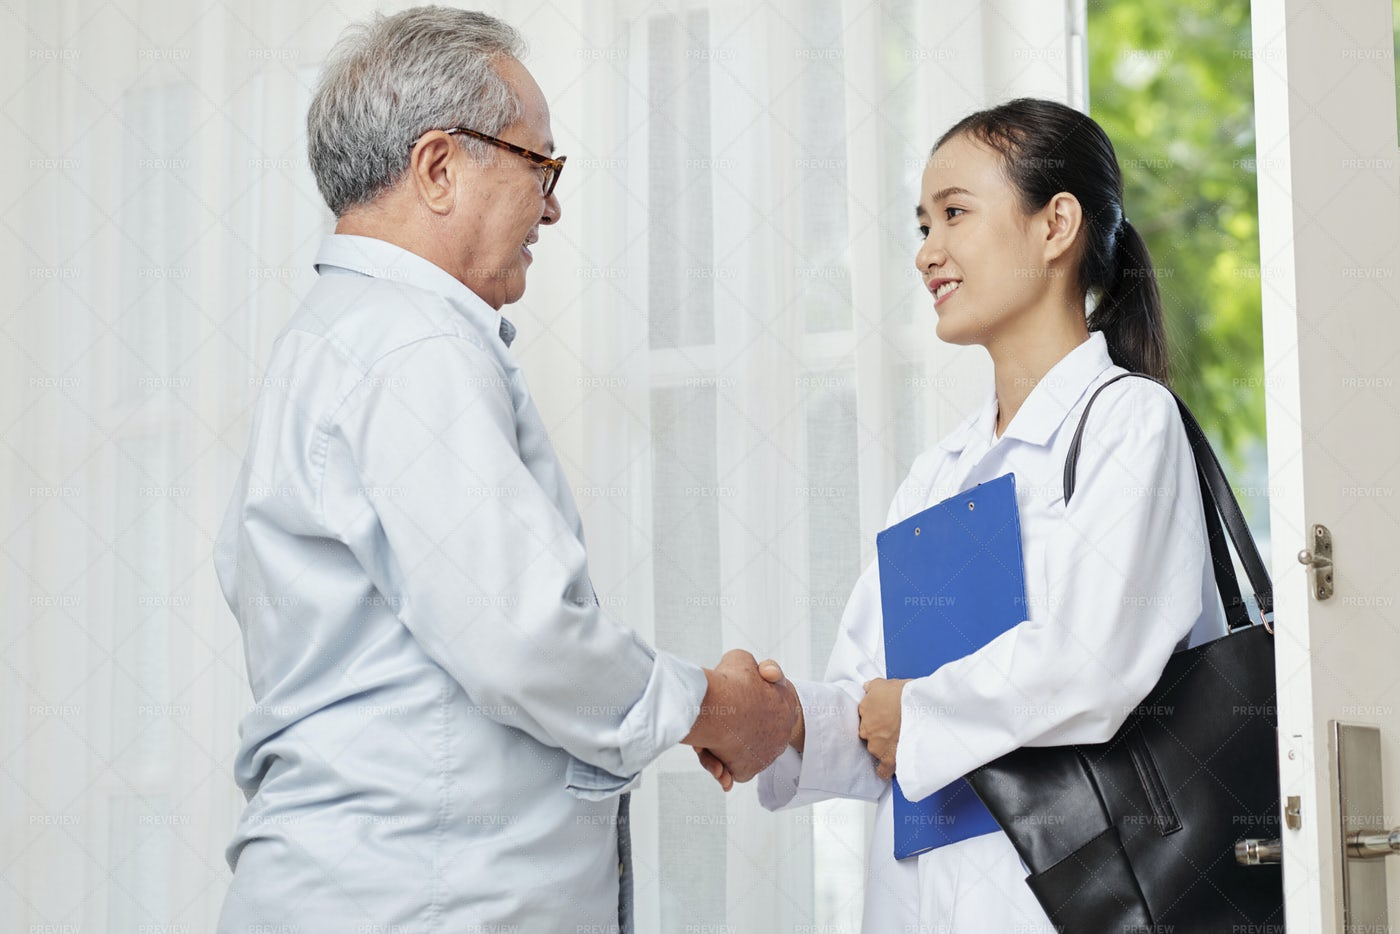 Patient And Doctor Shaking Hands: Stock Photos